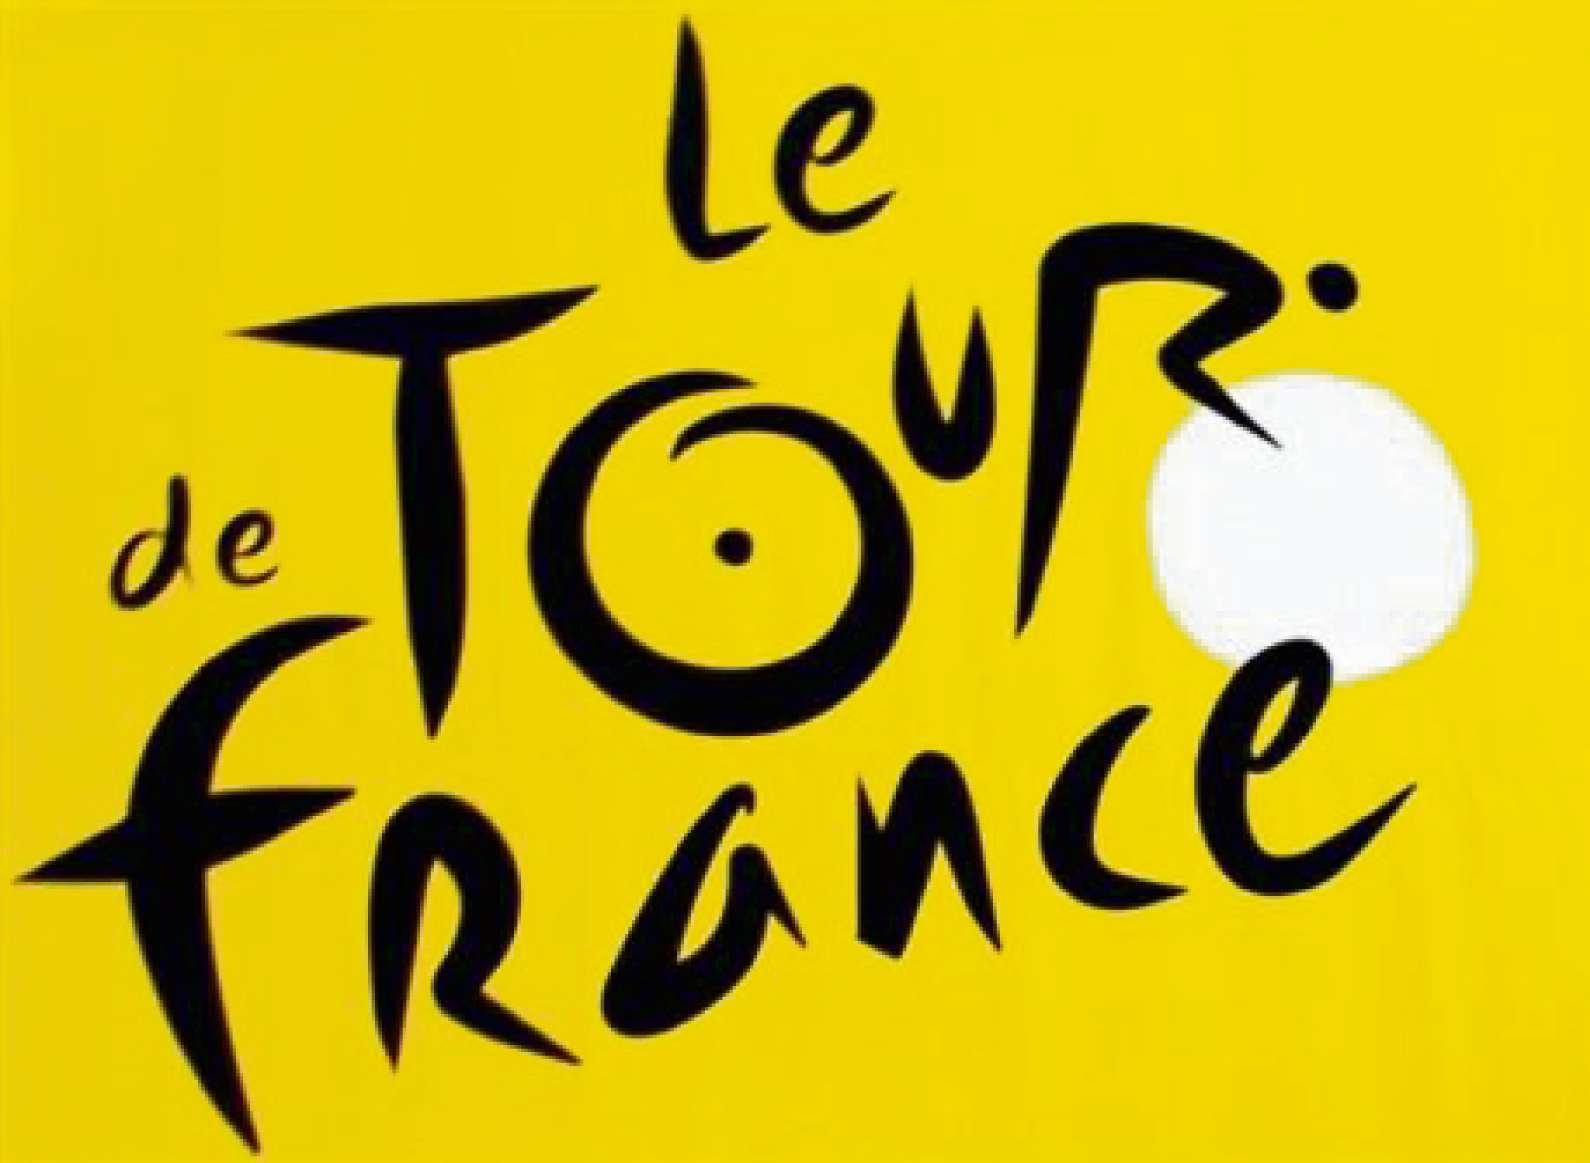 Schools could close on Friday before Tour de France weekend